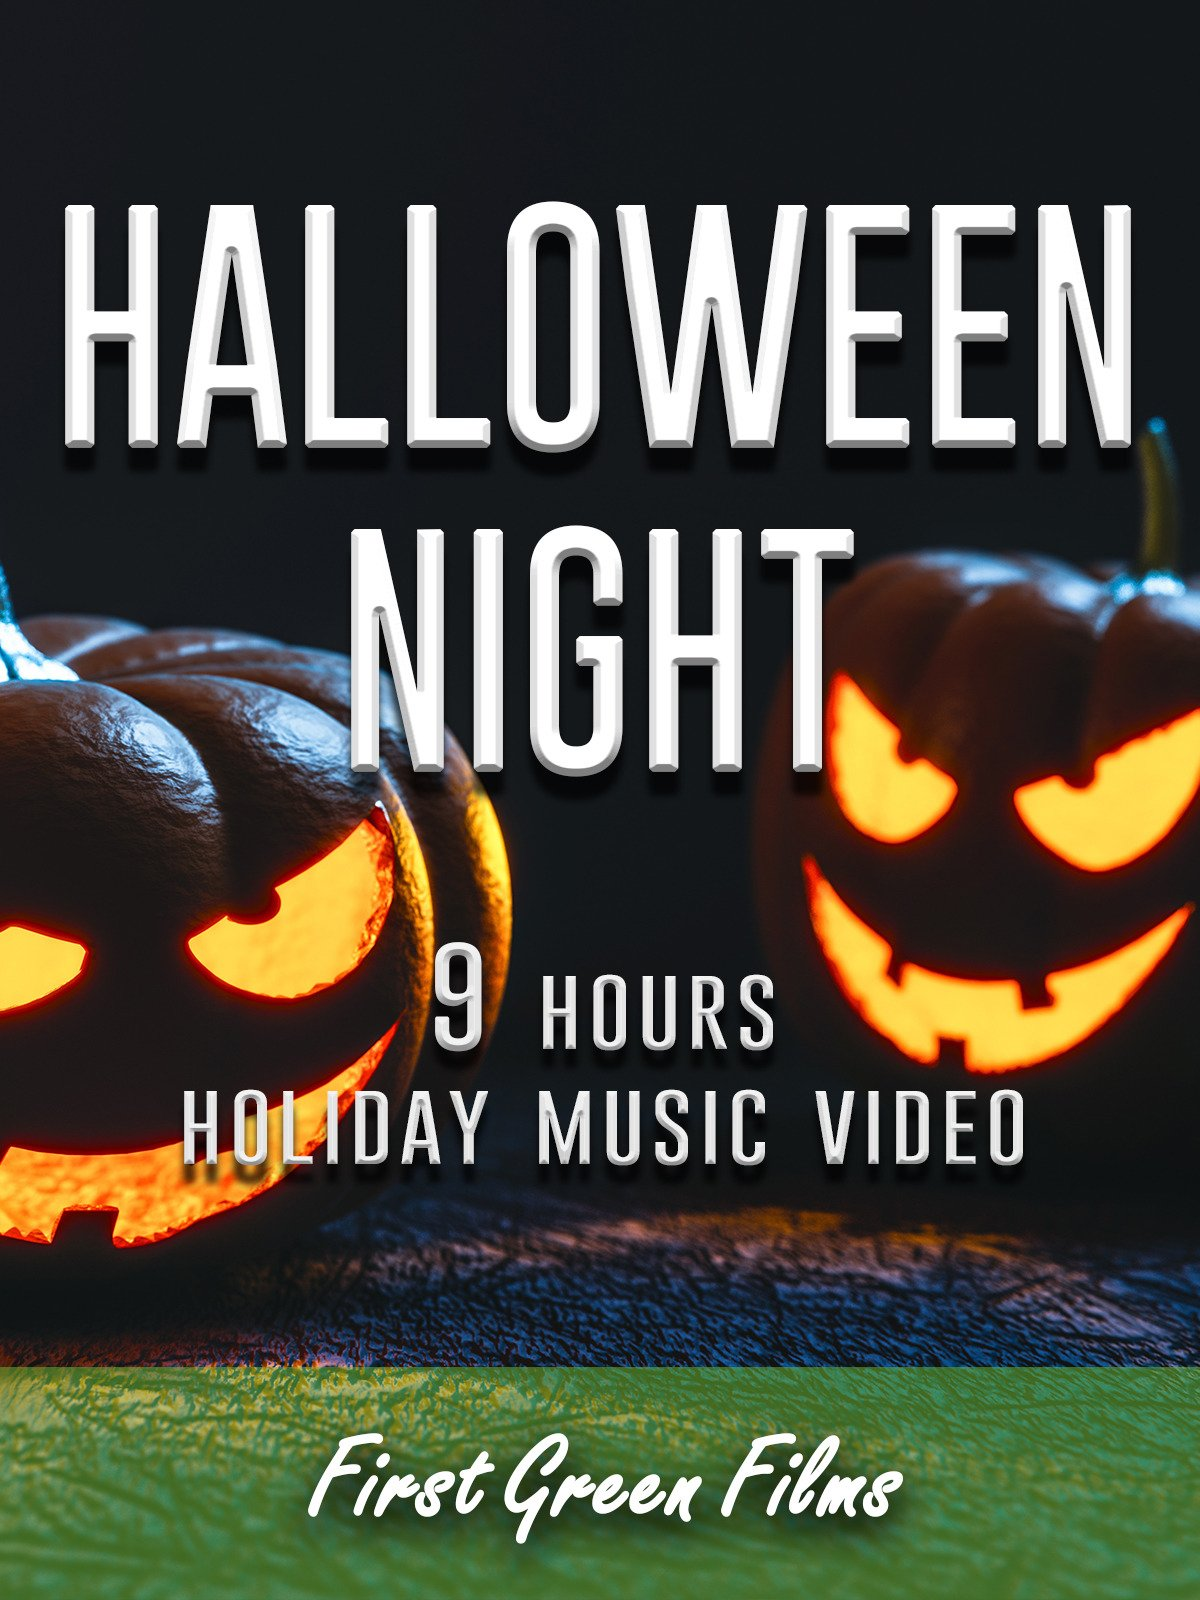 Halloween night, 9 hours holiday music video on Amazon Prime Instant Video UK